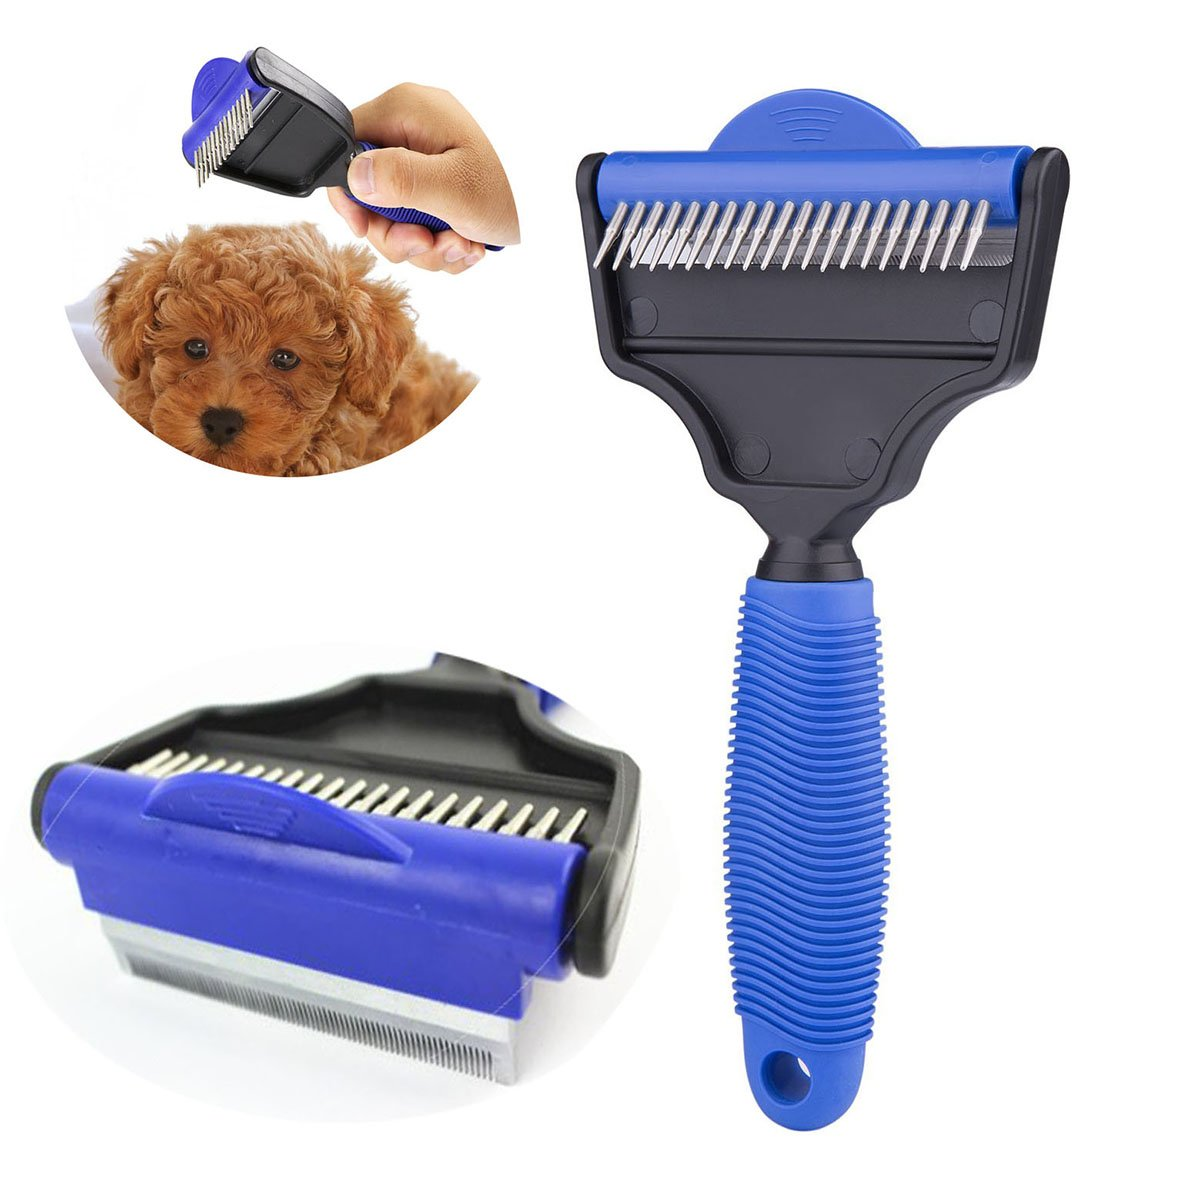 Pet Grooming - The Desheddinator Dog Brush Dog Comb and Undercoat Rake for Dogs Cats + Horses. Cat Brush for Shedding, Cat Grooming Brush, Cat Comb & Cat Groomer At Cat Products. De-shedding Tool